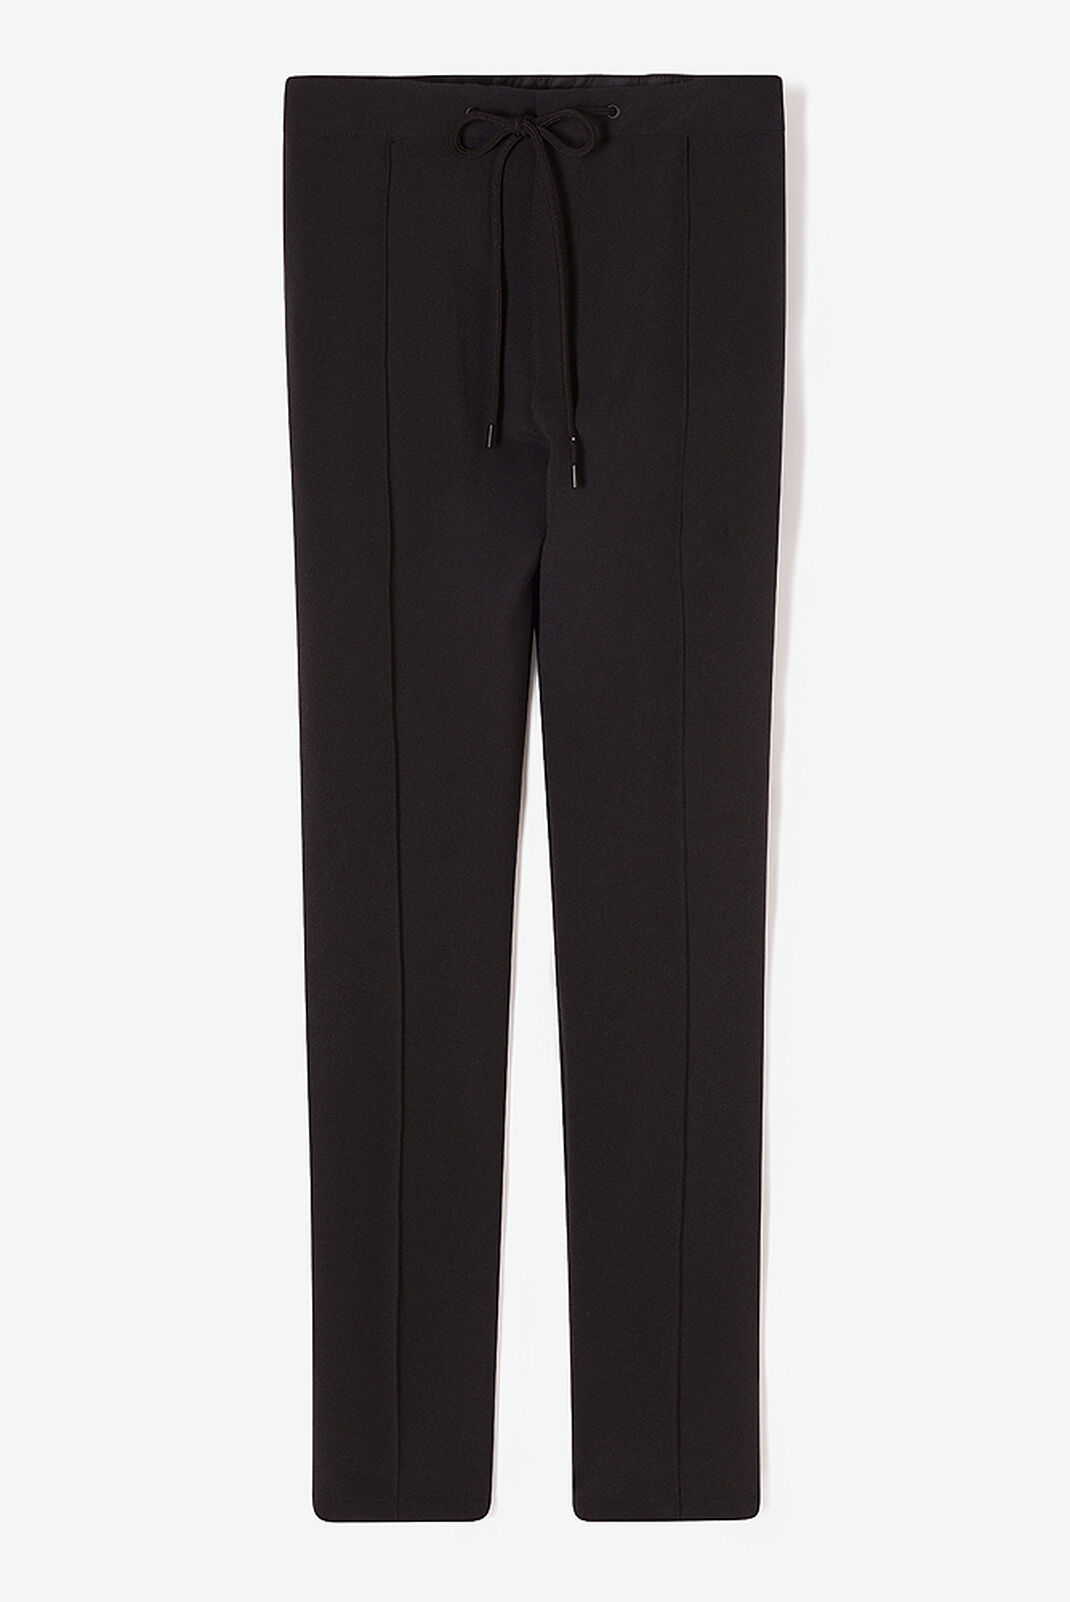 BLACK Black Stretch Pant for men KENZO